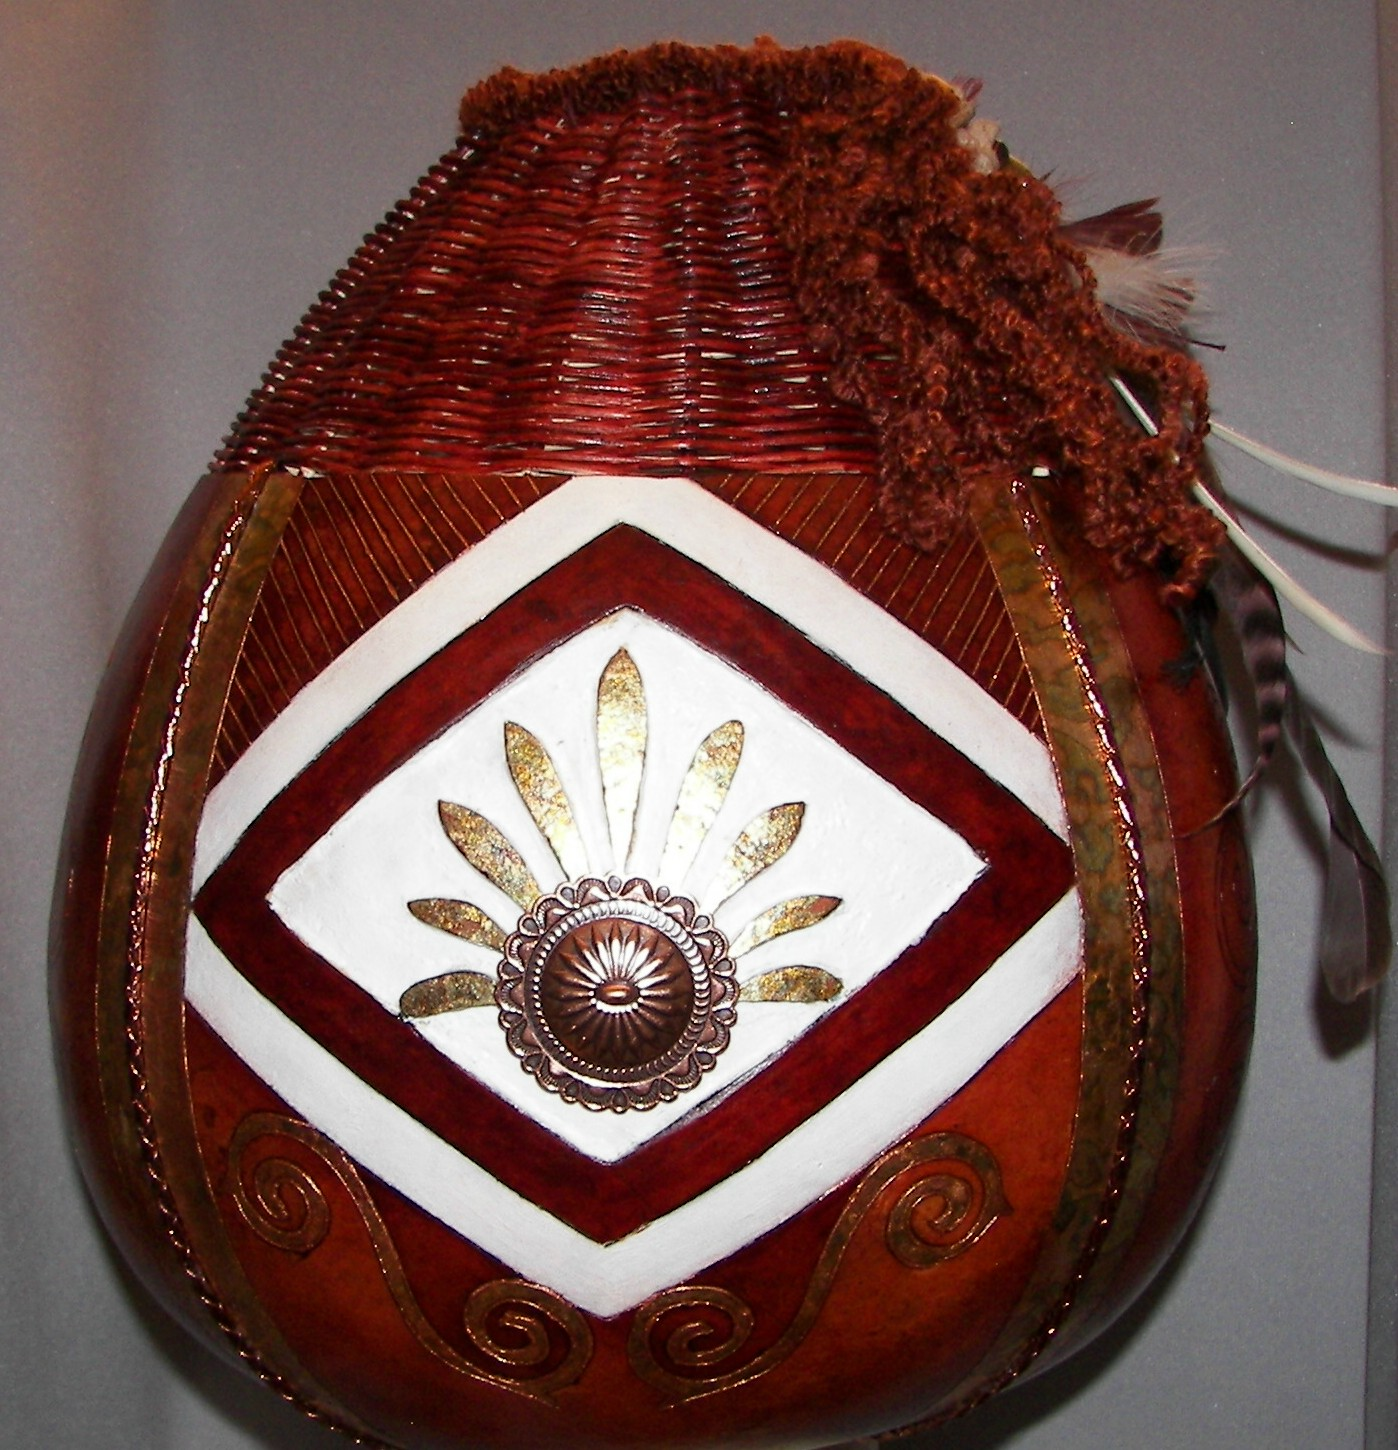 gourd-with-basket-weave